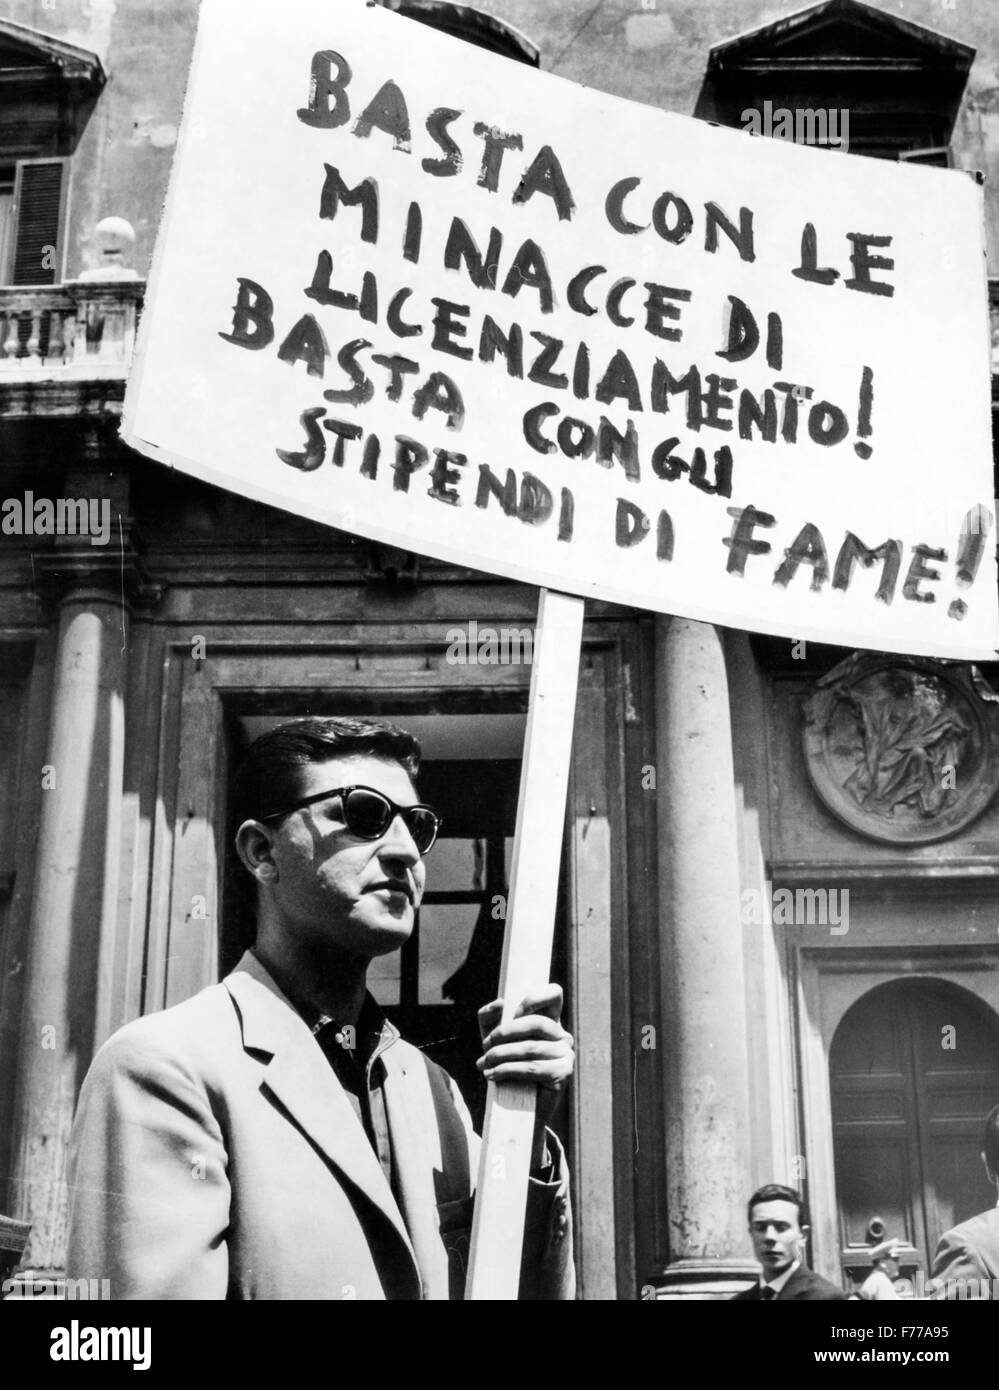 1st May in Rome,manifestation,1966 - Stock Image